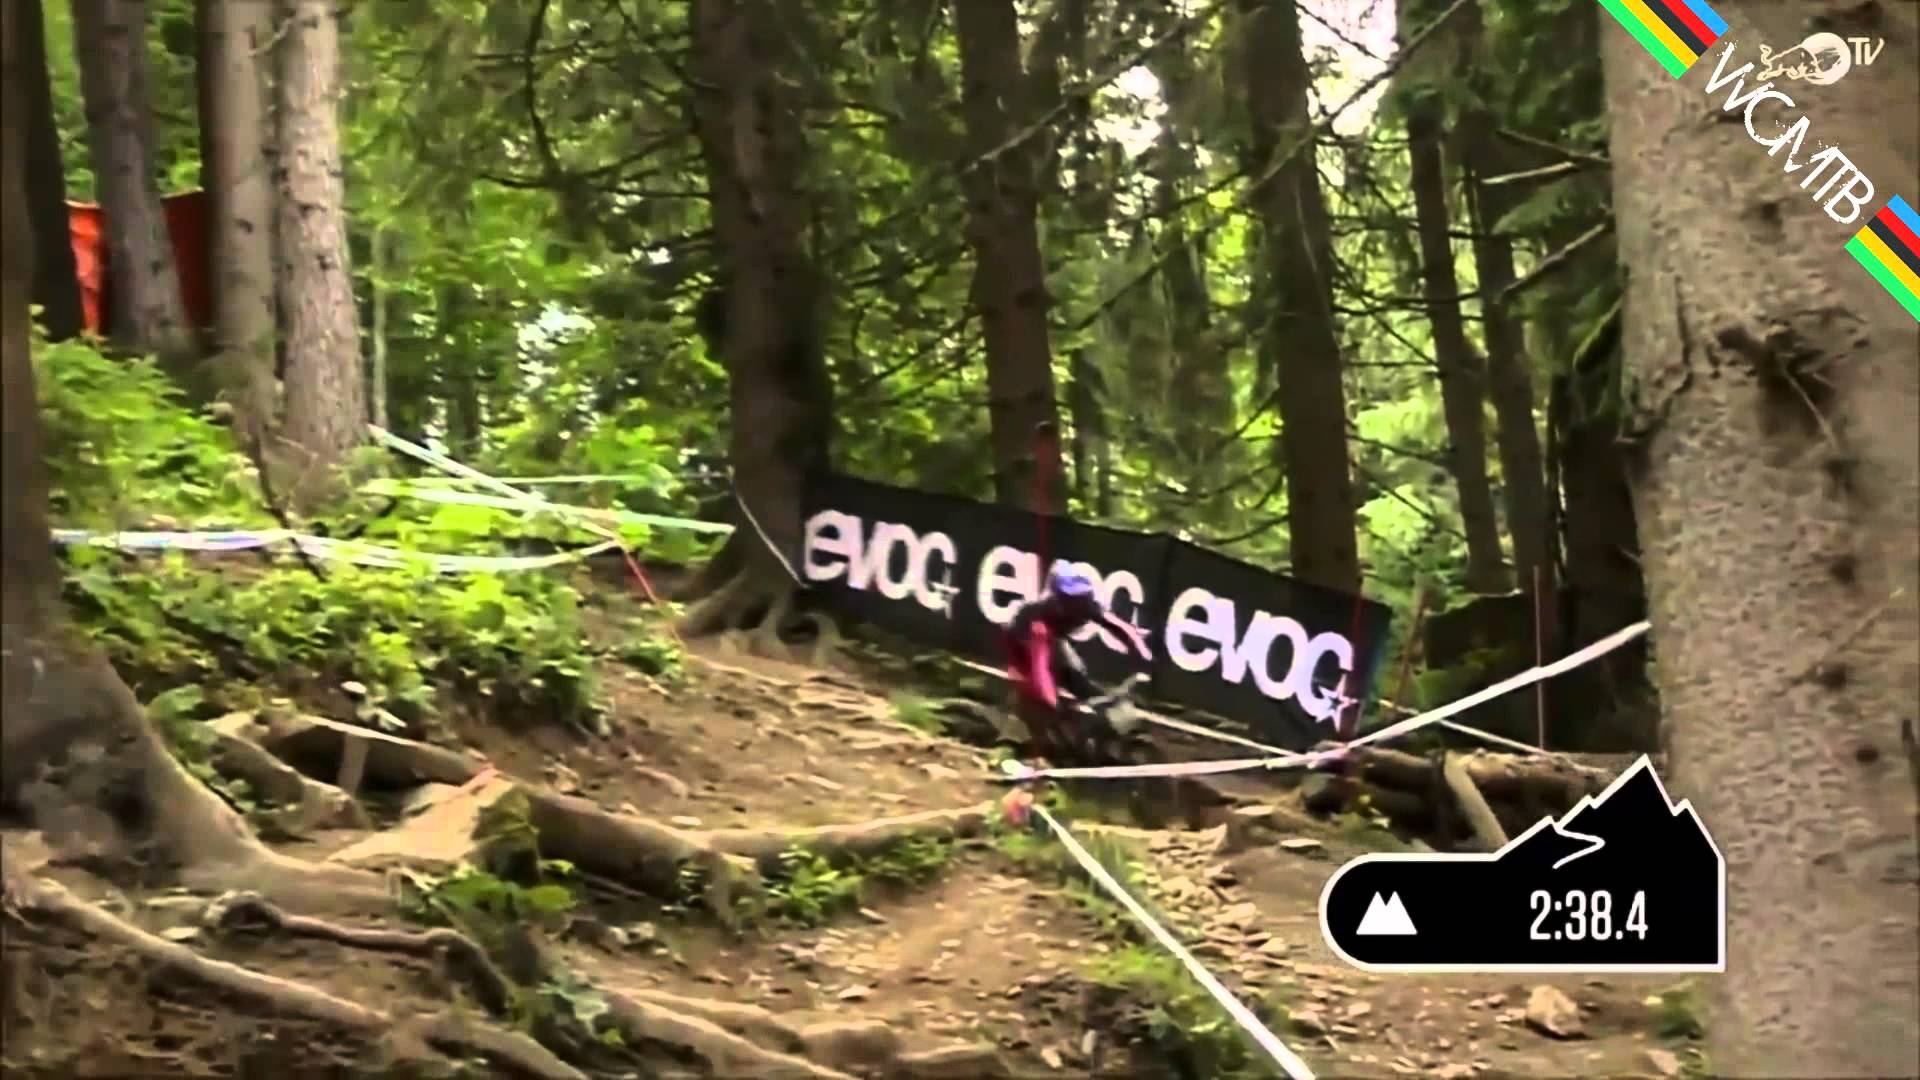 Mountain Biker Wins Race Without Bike Chain